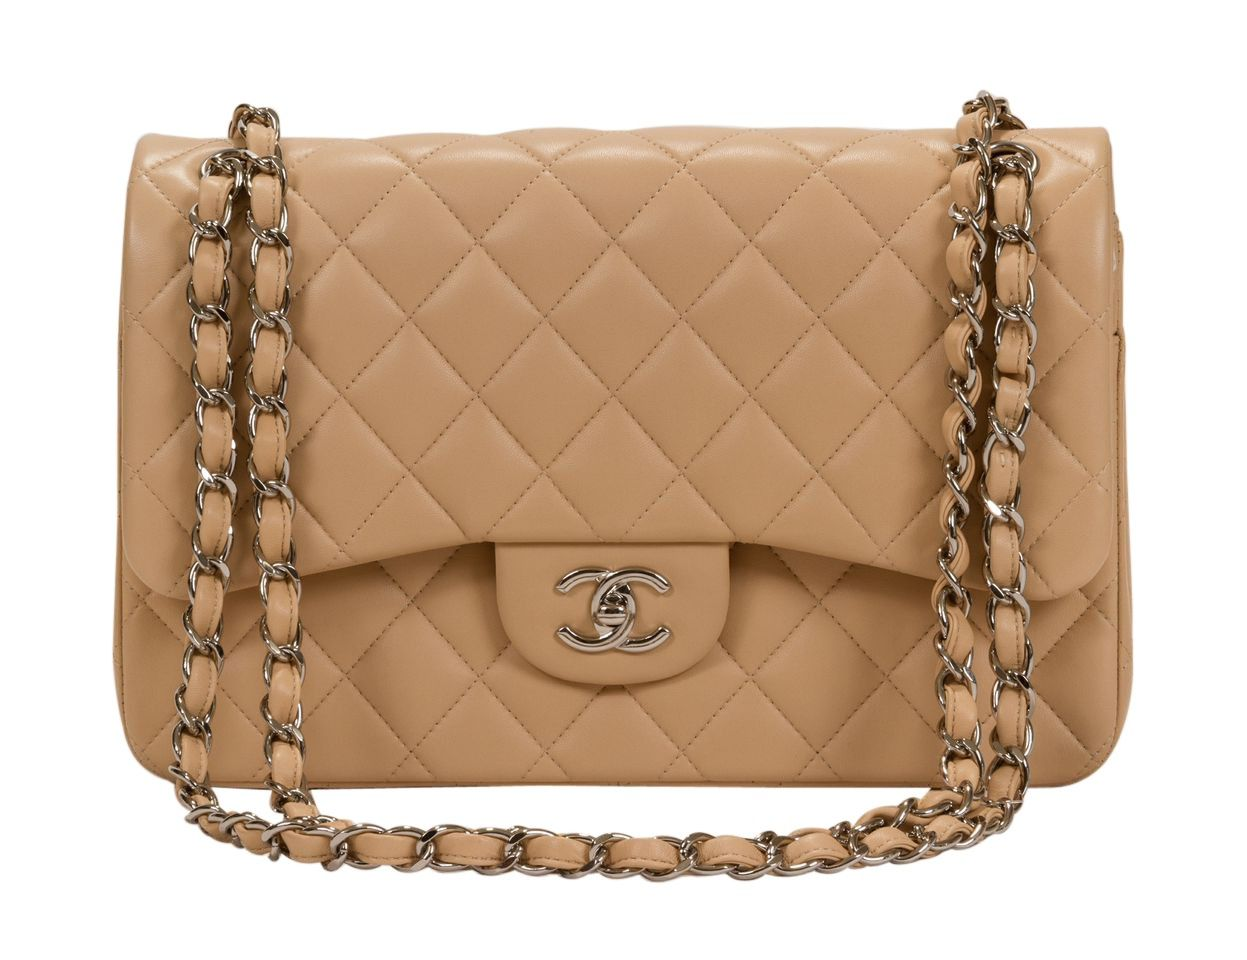 1fb2fe64ed7043 Chanel Beige Lambskin Jumbo Double Flap NWT - Brand New With Tags Chanel  classic jumbo double flap purse. Silver metal hardware and beige quilted  lambskin.